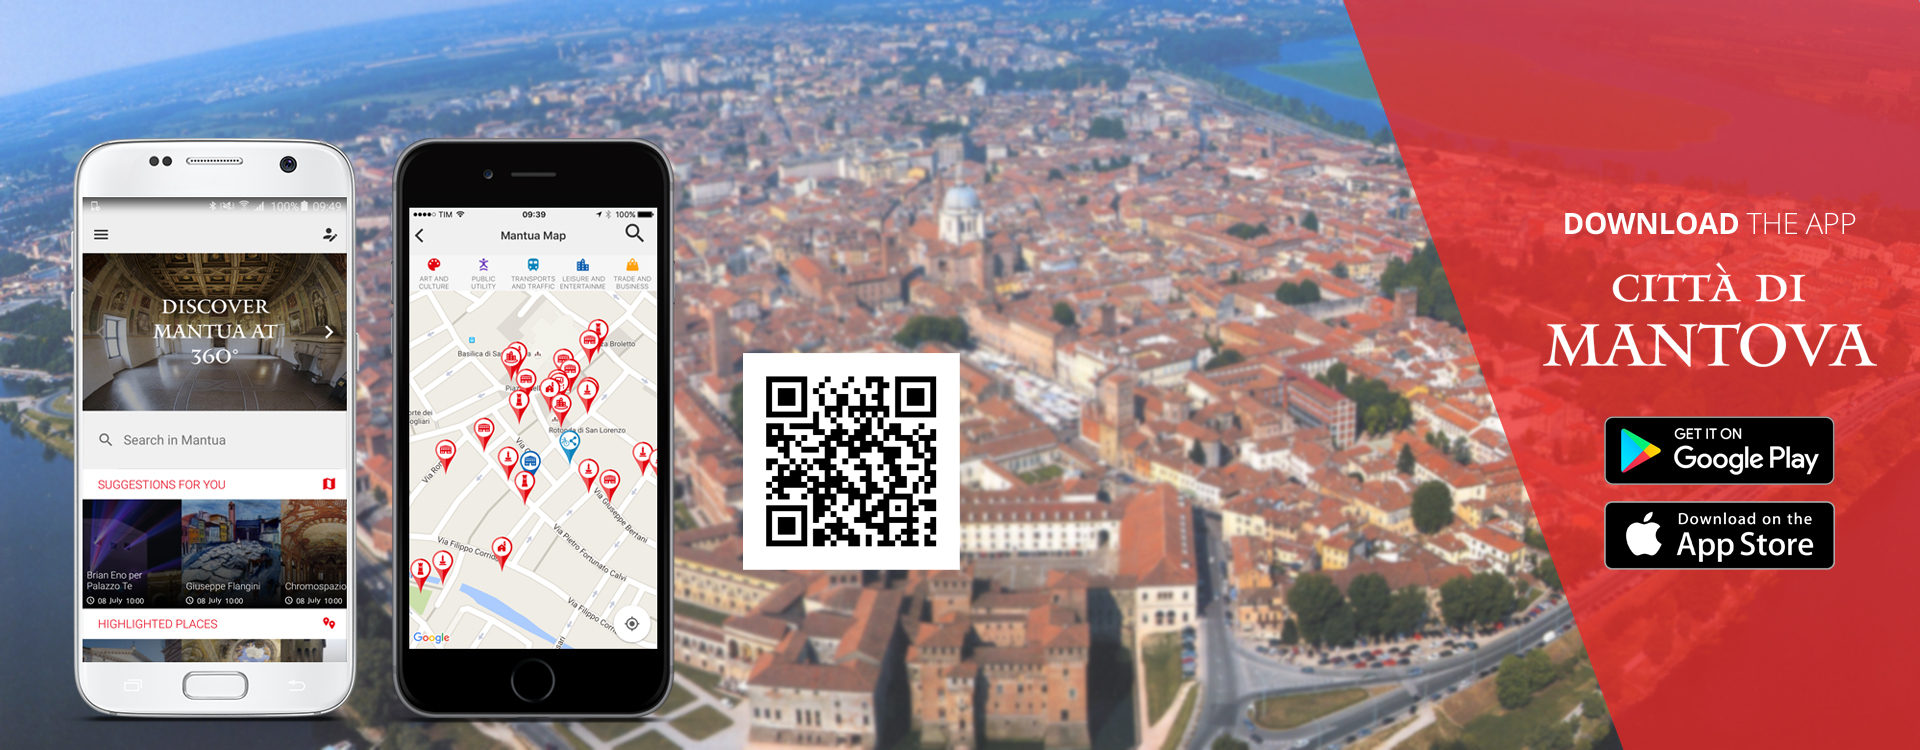 DISCOVER MANTUA AT 360°